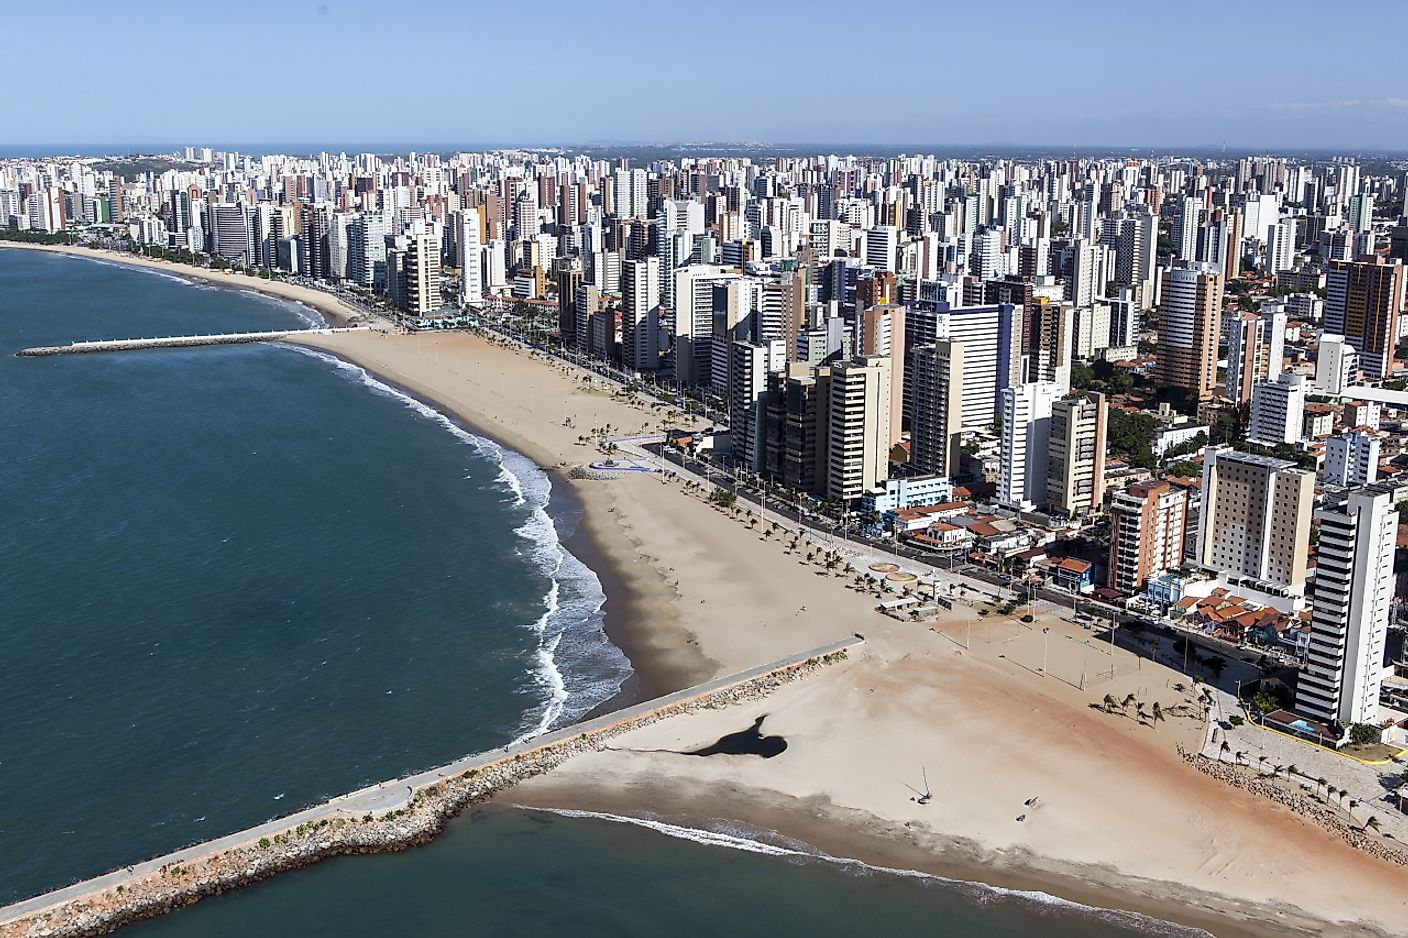 fortaleza brazil 6 The Most Dangerous Cities In The World